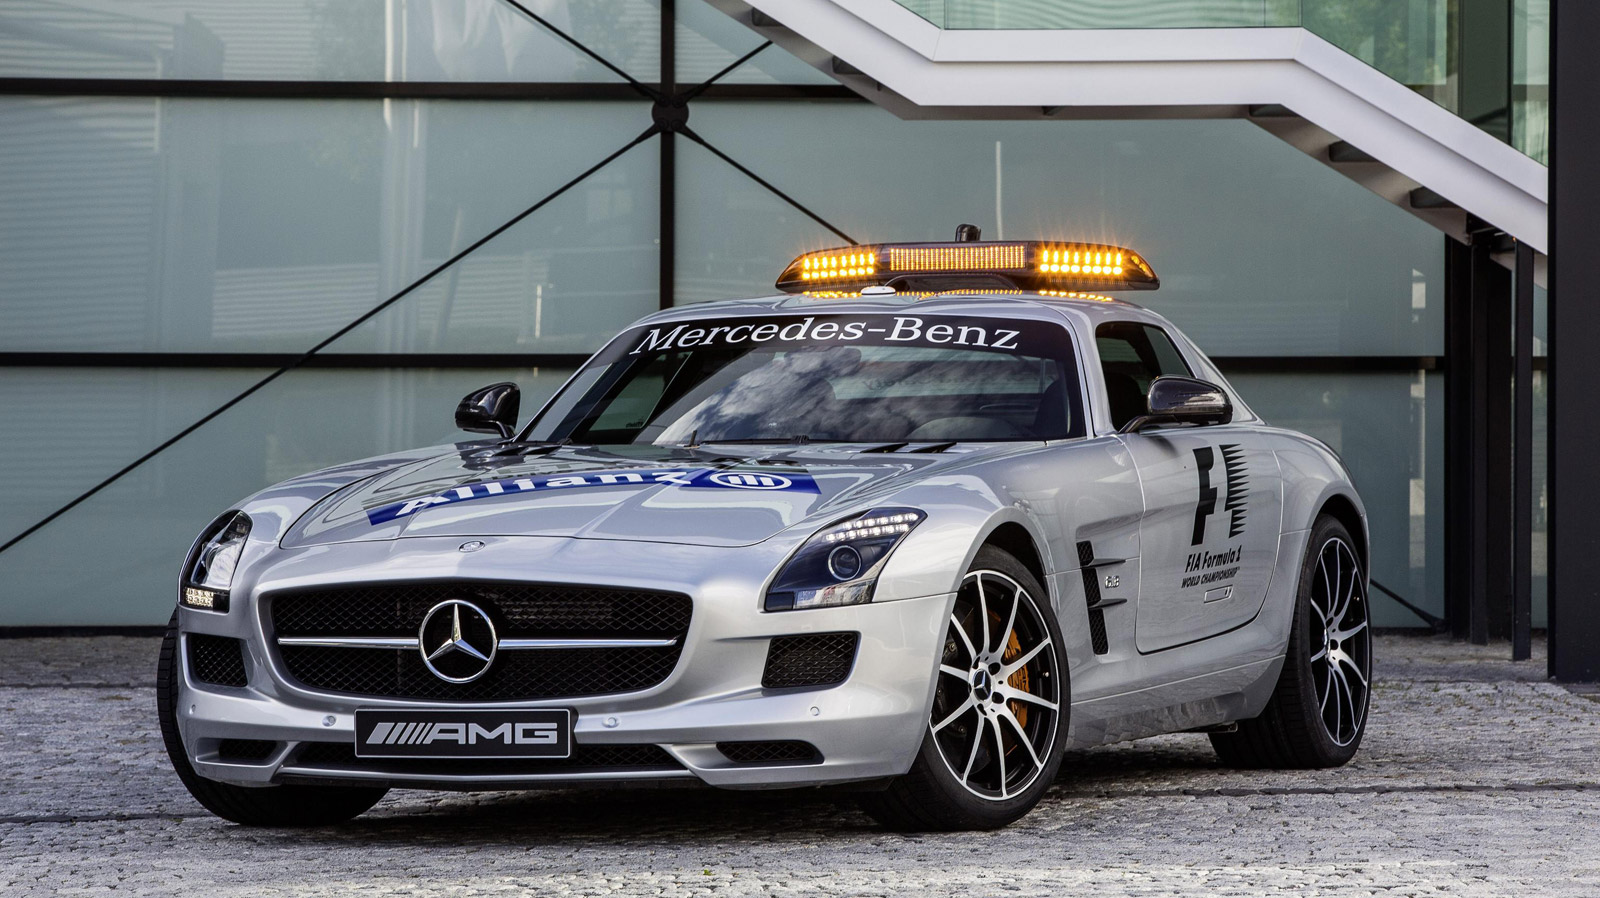 F1 safety car gets upgraded to mercedes benz sls amg gt for Mercedes benz f1